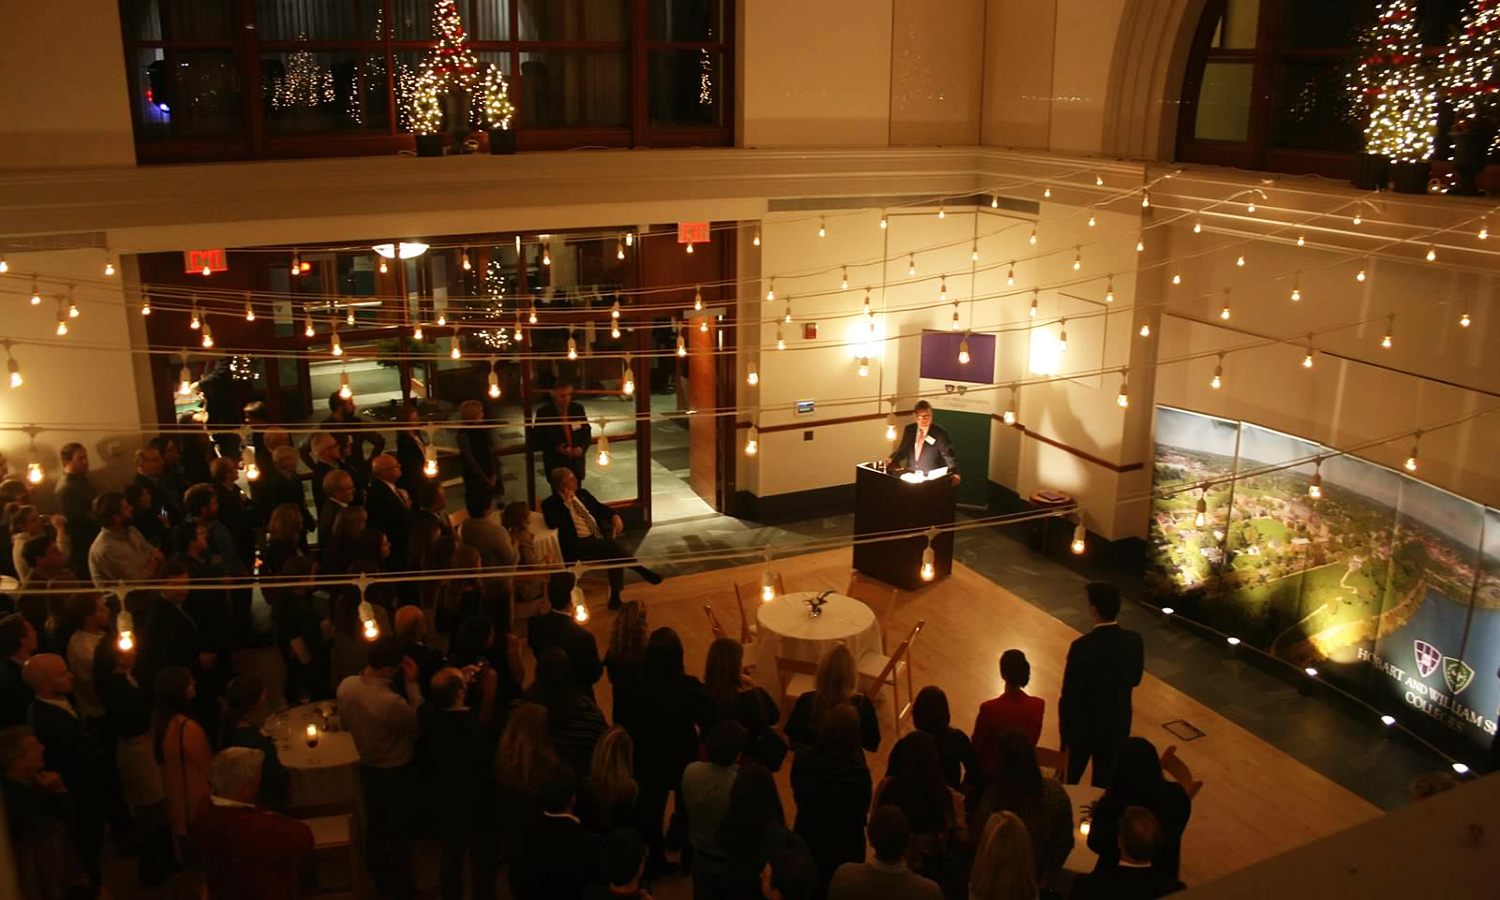 President Mark D. Gearan speaks to alums and parents at the HWS Boston Holiday Gathering at the Boston Exchange Conference Center on Wednesday.